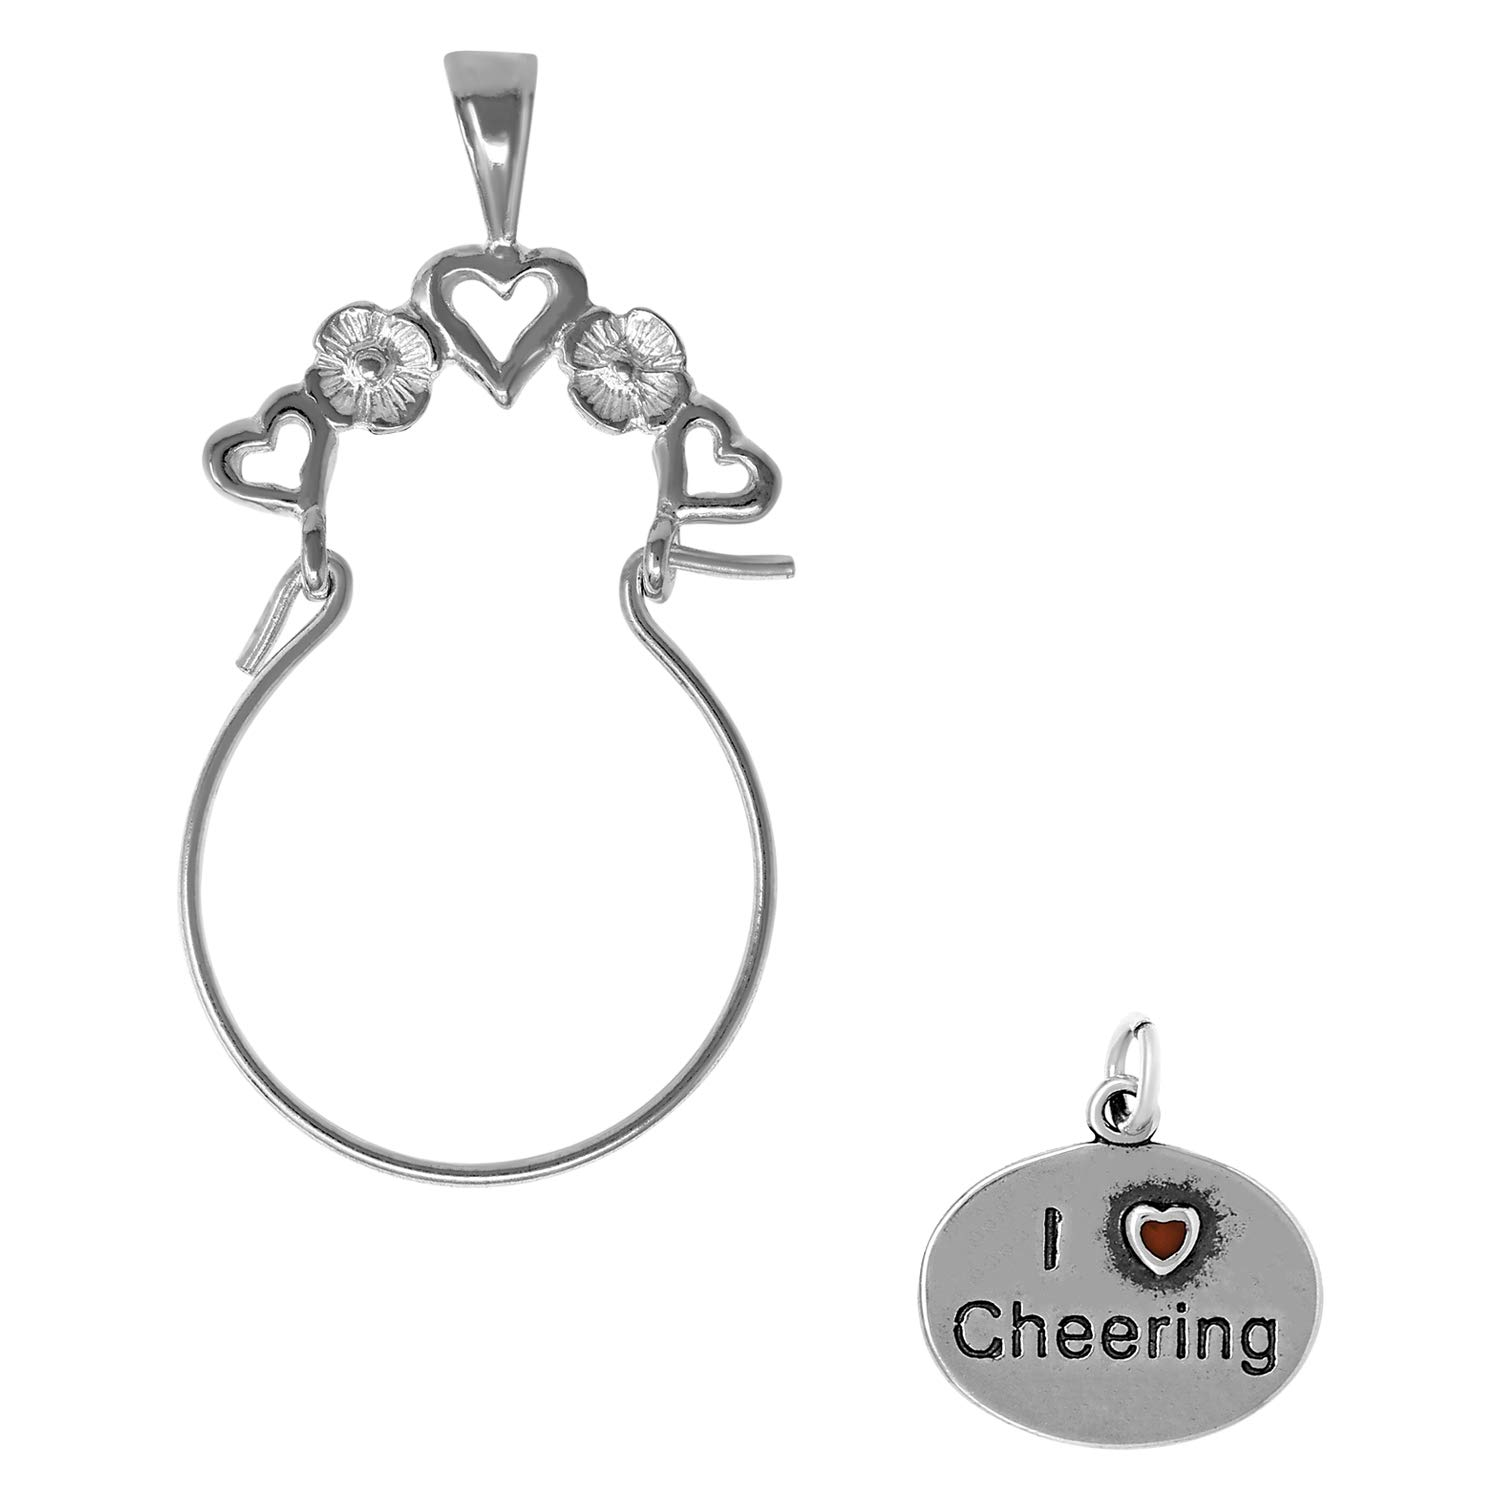 Raposa Elegance Sterling Silver I Love Cheering Charm on Optional Charm Holder